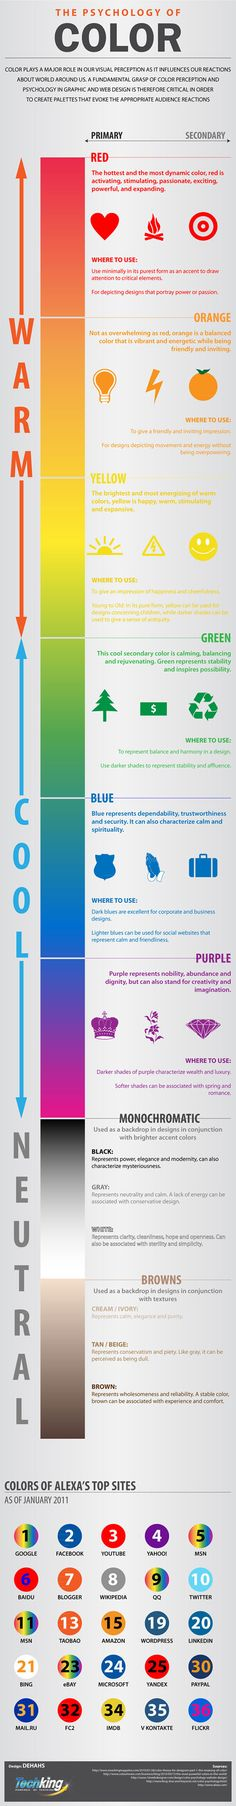 Psychology of Color: I don't know how research-based this is, but it's intriguing.